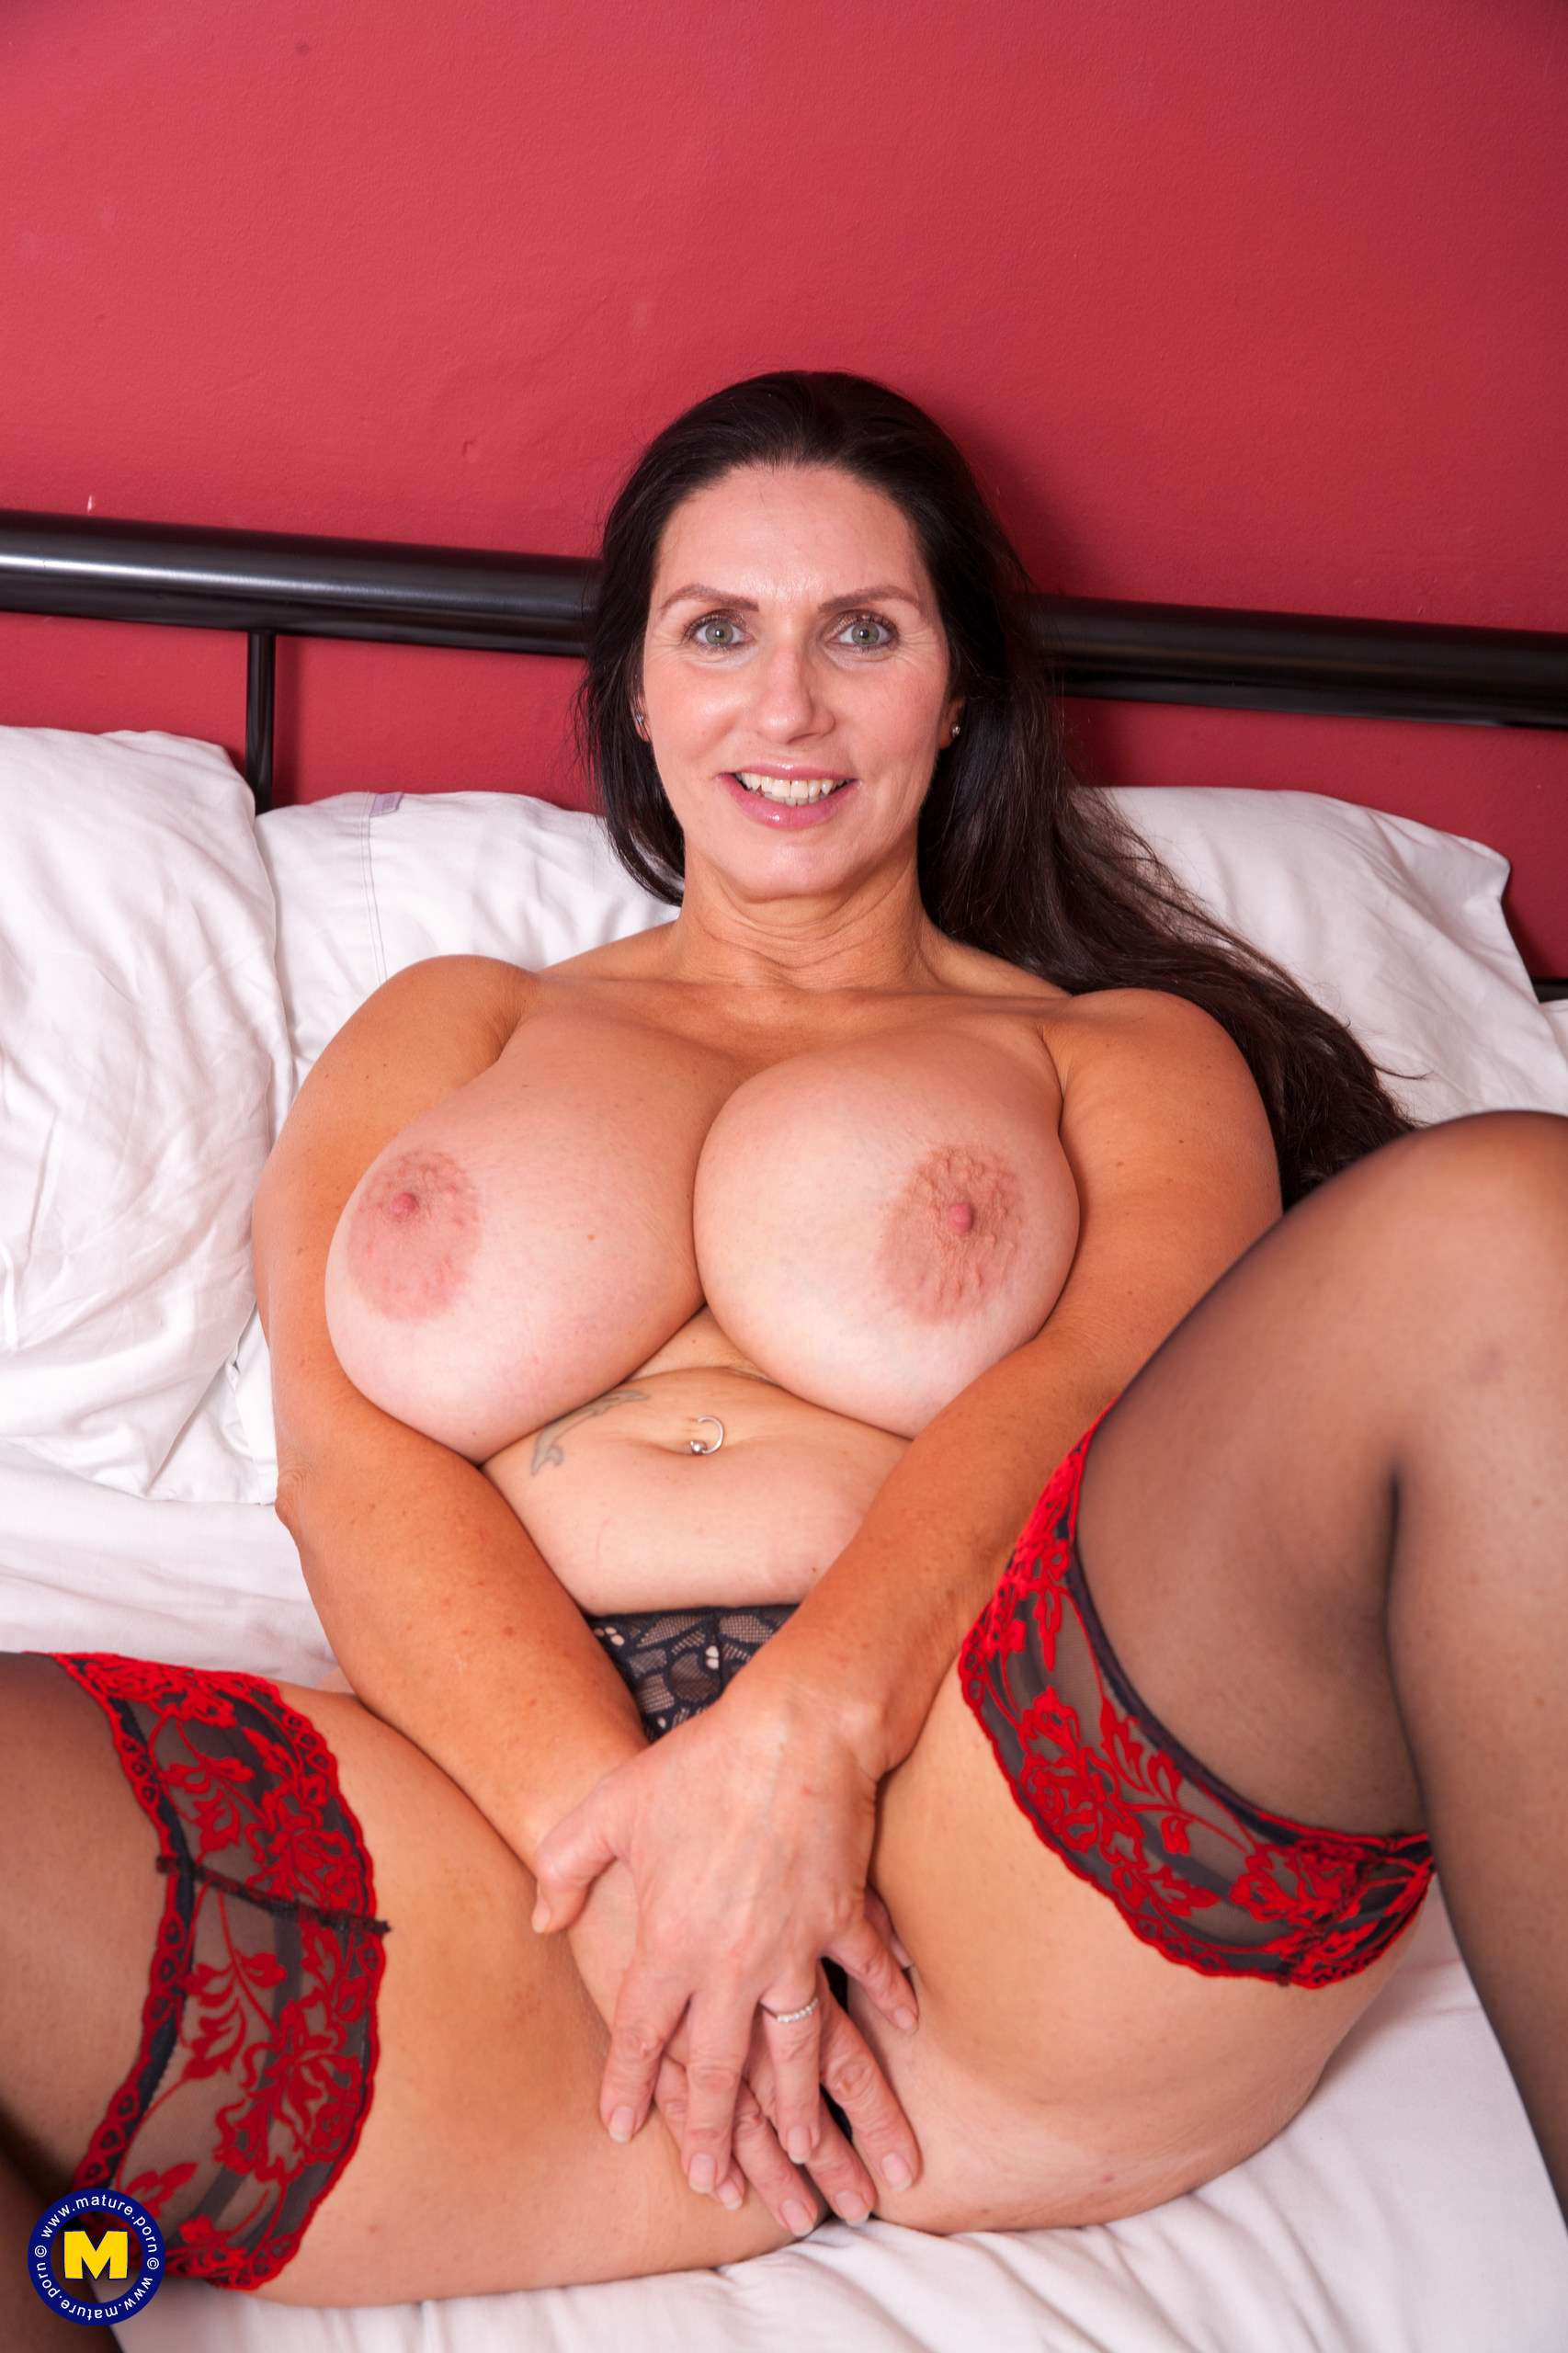 Hot big breasted Josephine is home alone and naughty as hell at Mature.nl